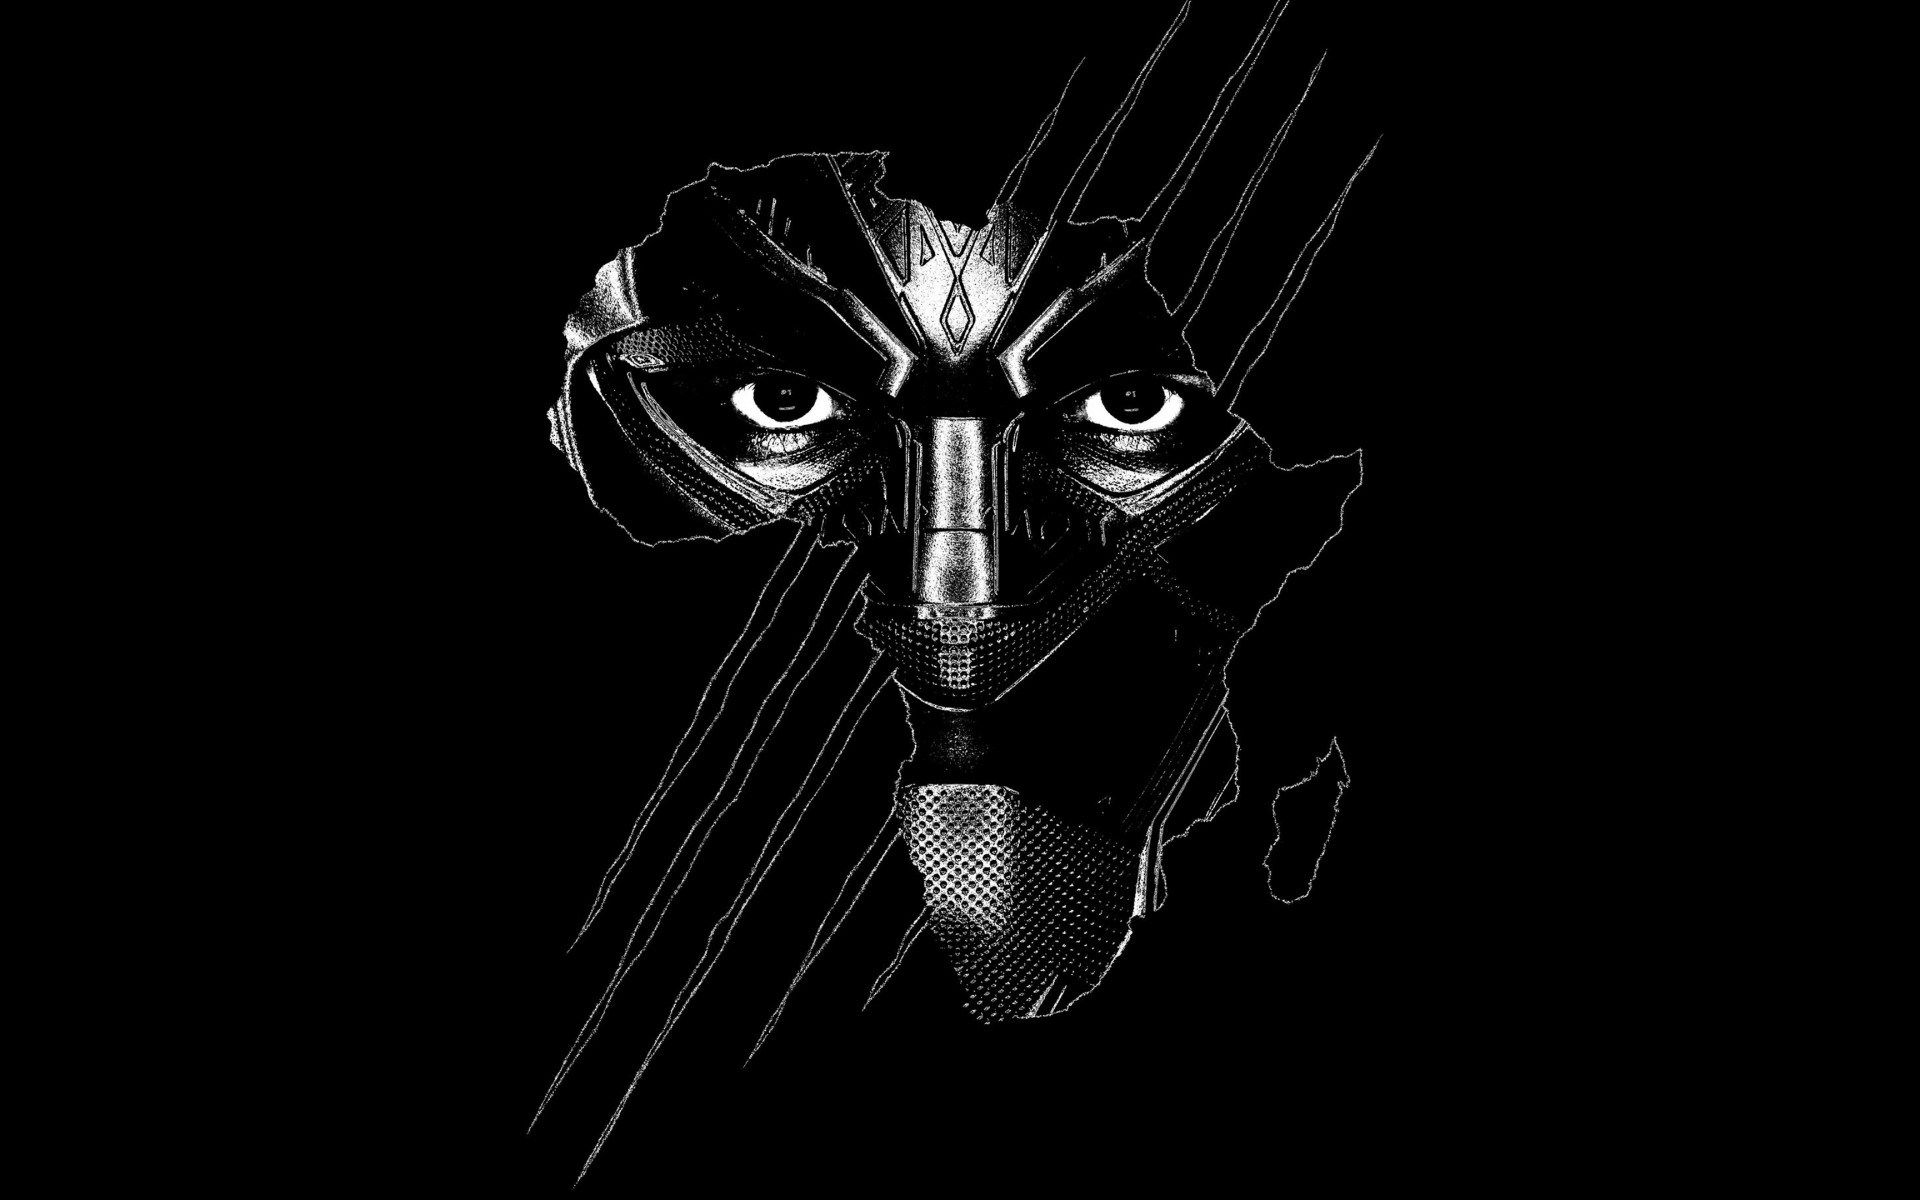 Black Panther Movie Wallpaper 4k Black Panther 2018 Wallpaper Black Panther Wallpaper Iphone Black Black Panther Hd Wallpaper Panther Art Black Panther Marvel